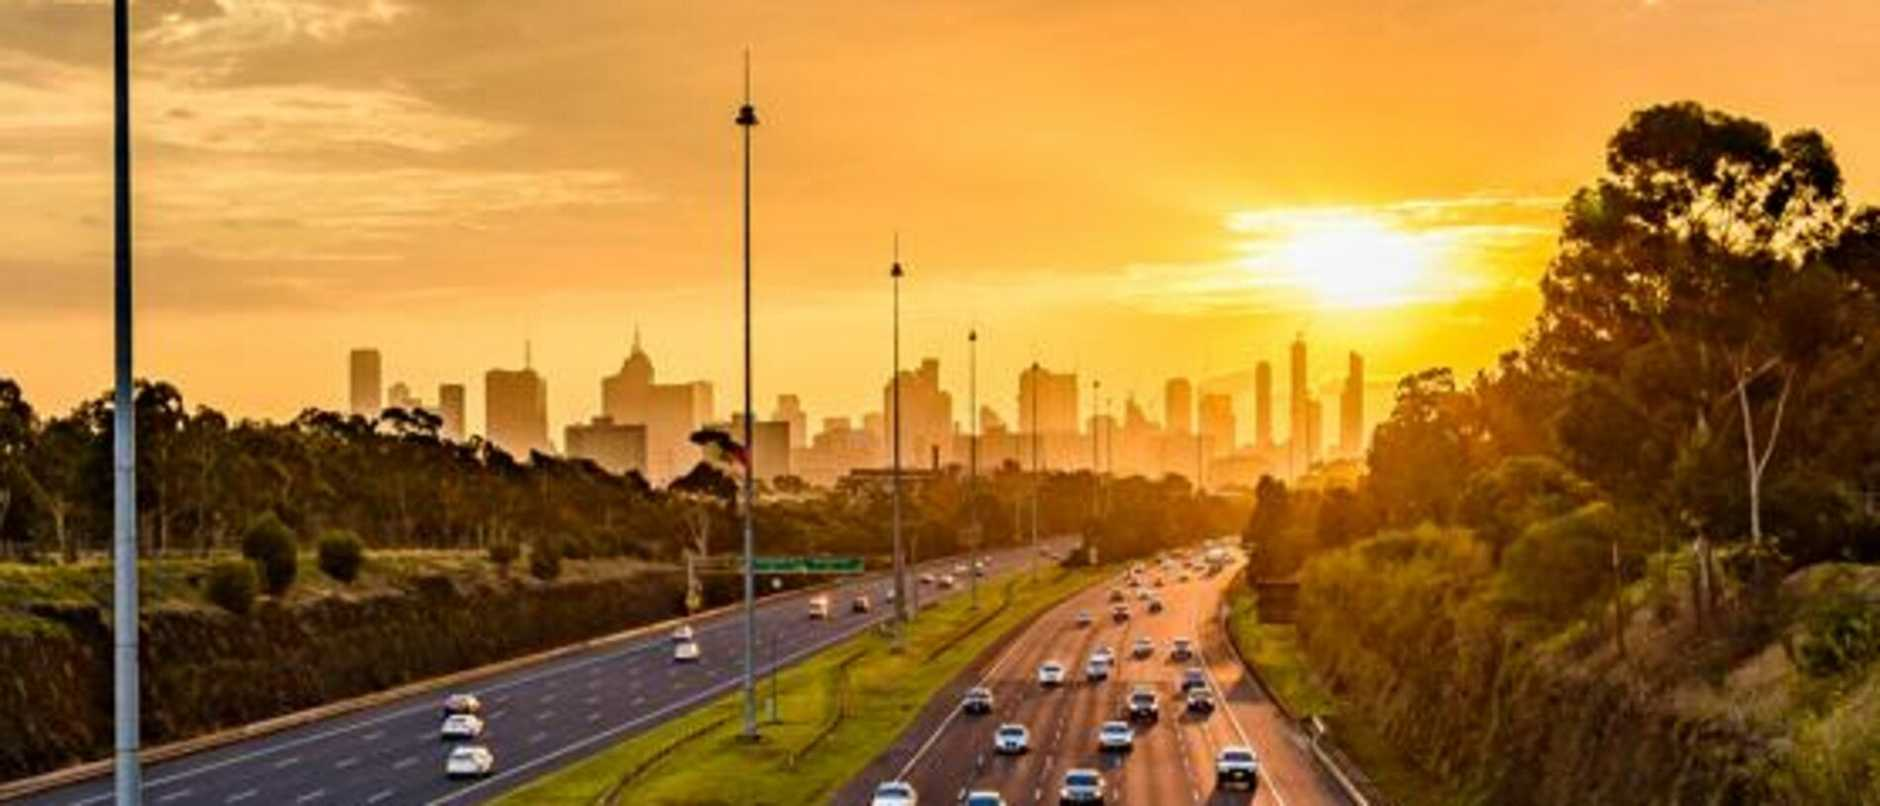 Why are younger Australians moving away from big cities?